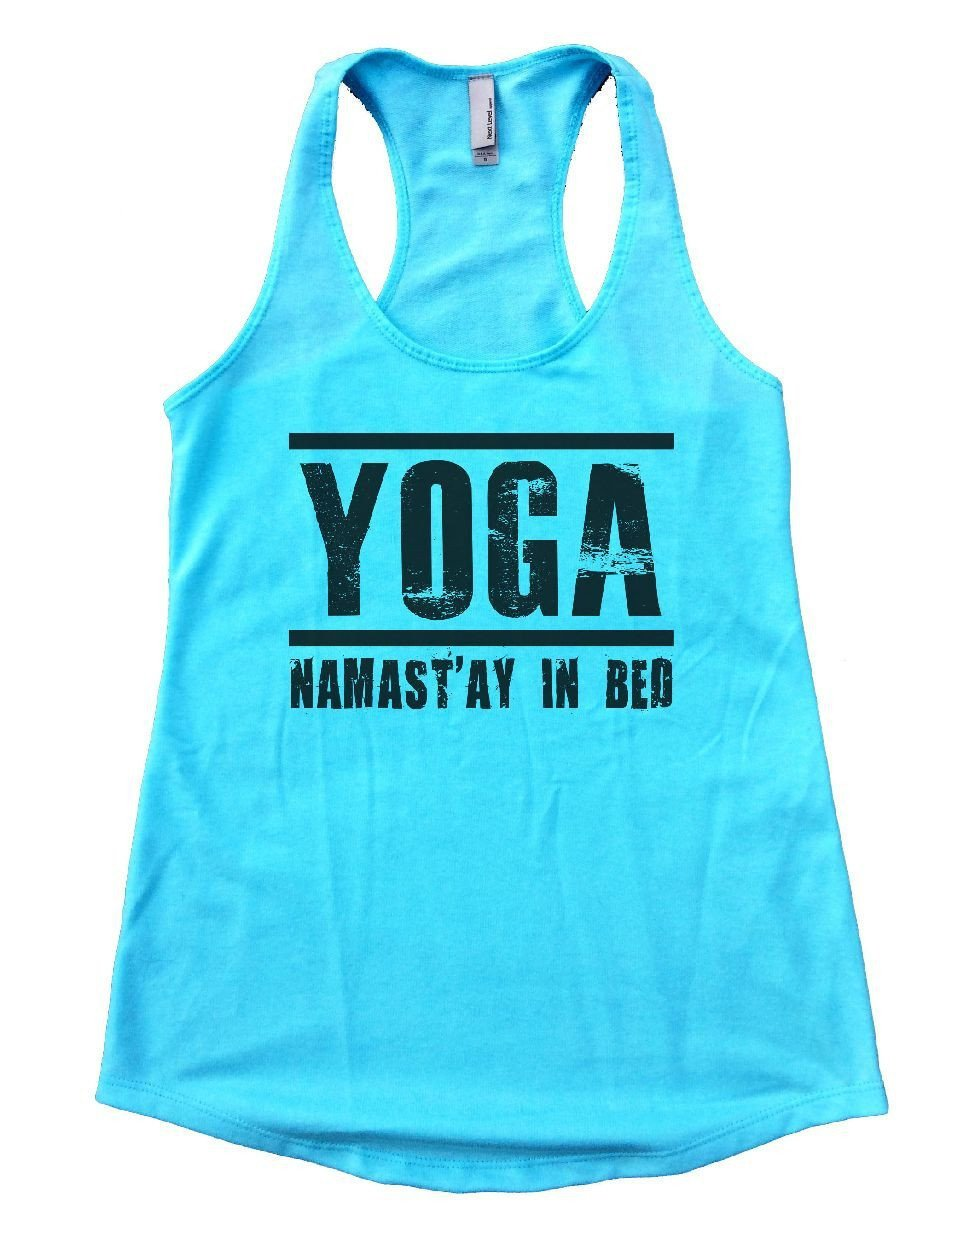 YOGA NAMAST'AY IN BED Womens Workout Tank Top Small Womens Tank Tops Cancun Blue